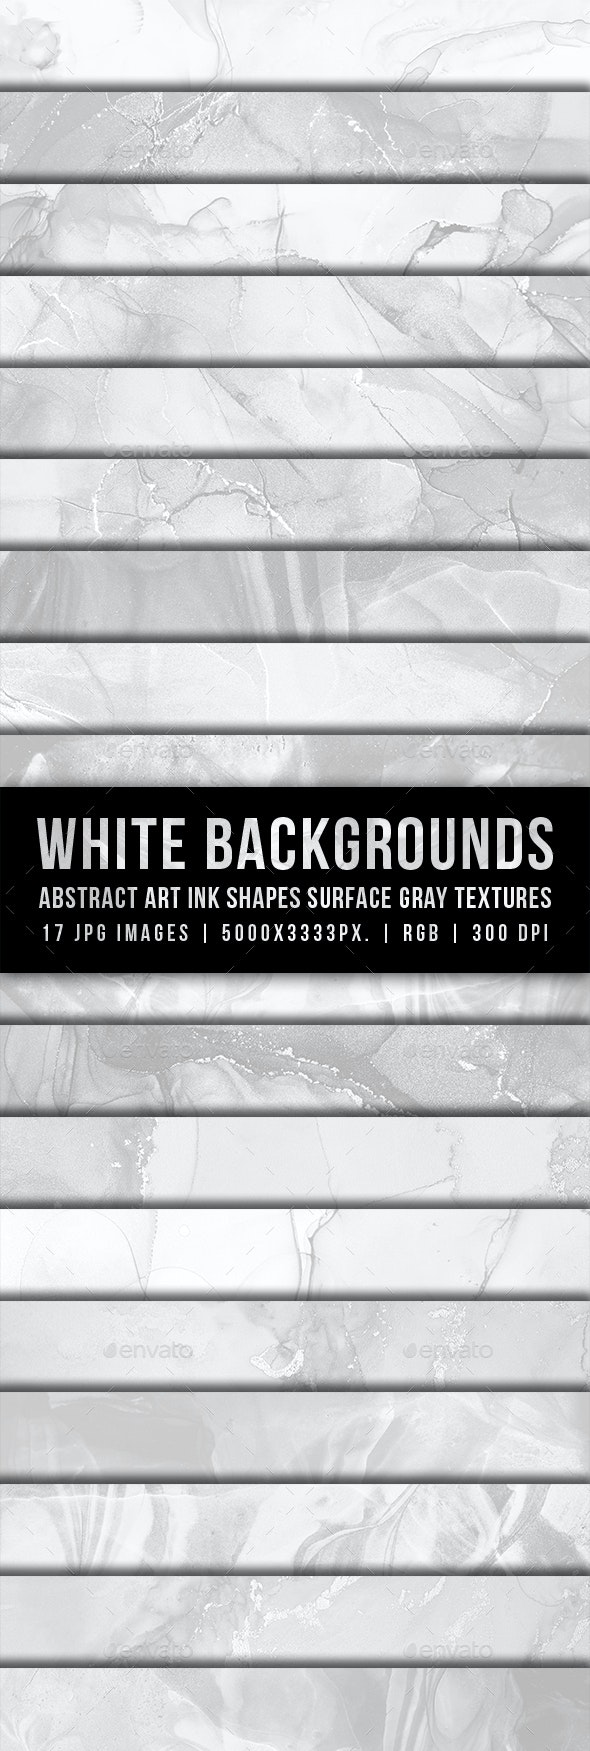 White Backgrounds Abstract Art Ink Shapes Surface Gray Textures - Abstract Backgrounds